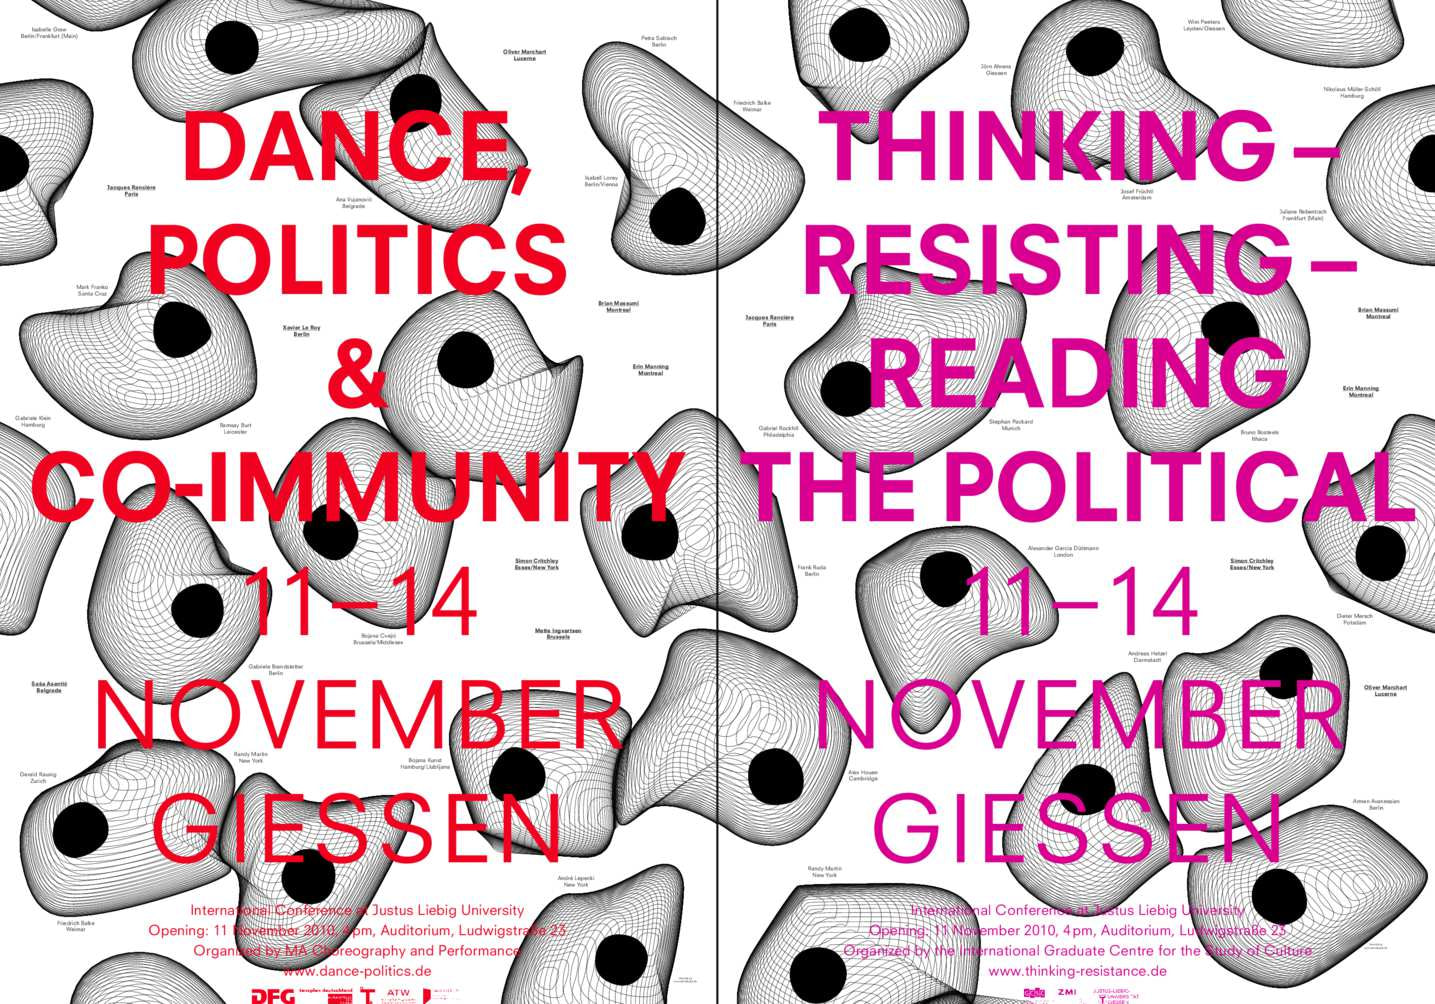 dance-politicsdance-politics-co-immunity-posters-repeat-00-1435x1004px